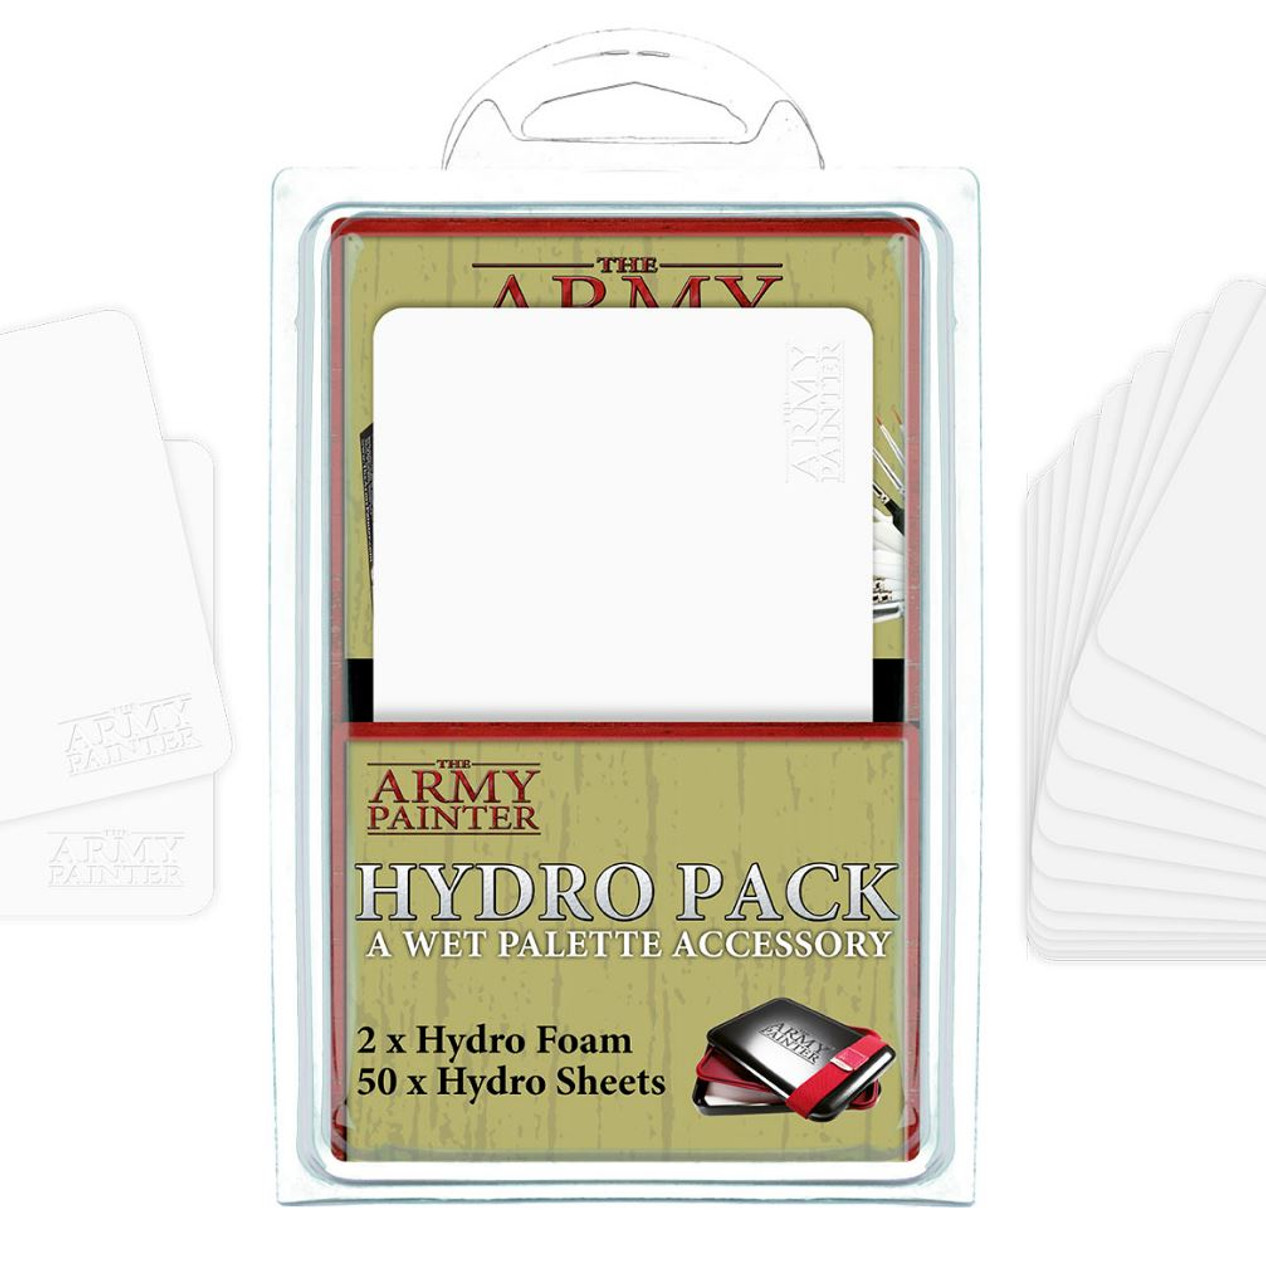 Army Painter Hydro Pack for Wet Palette